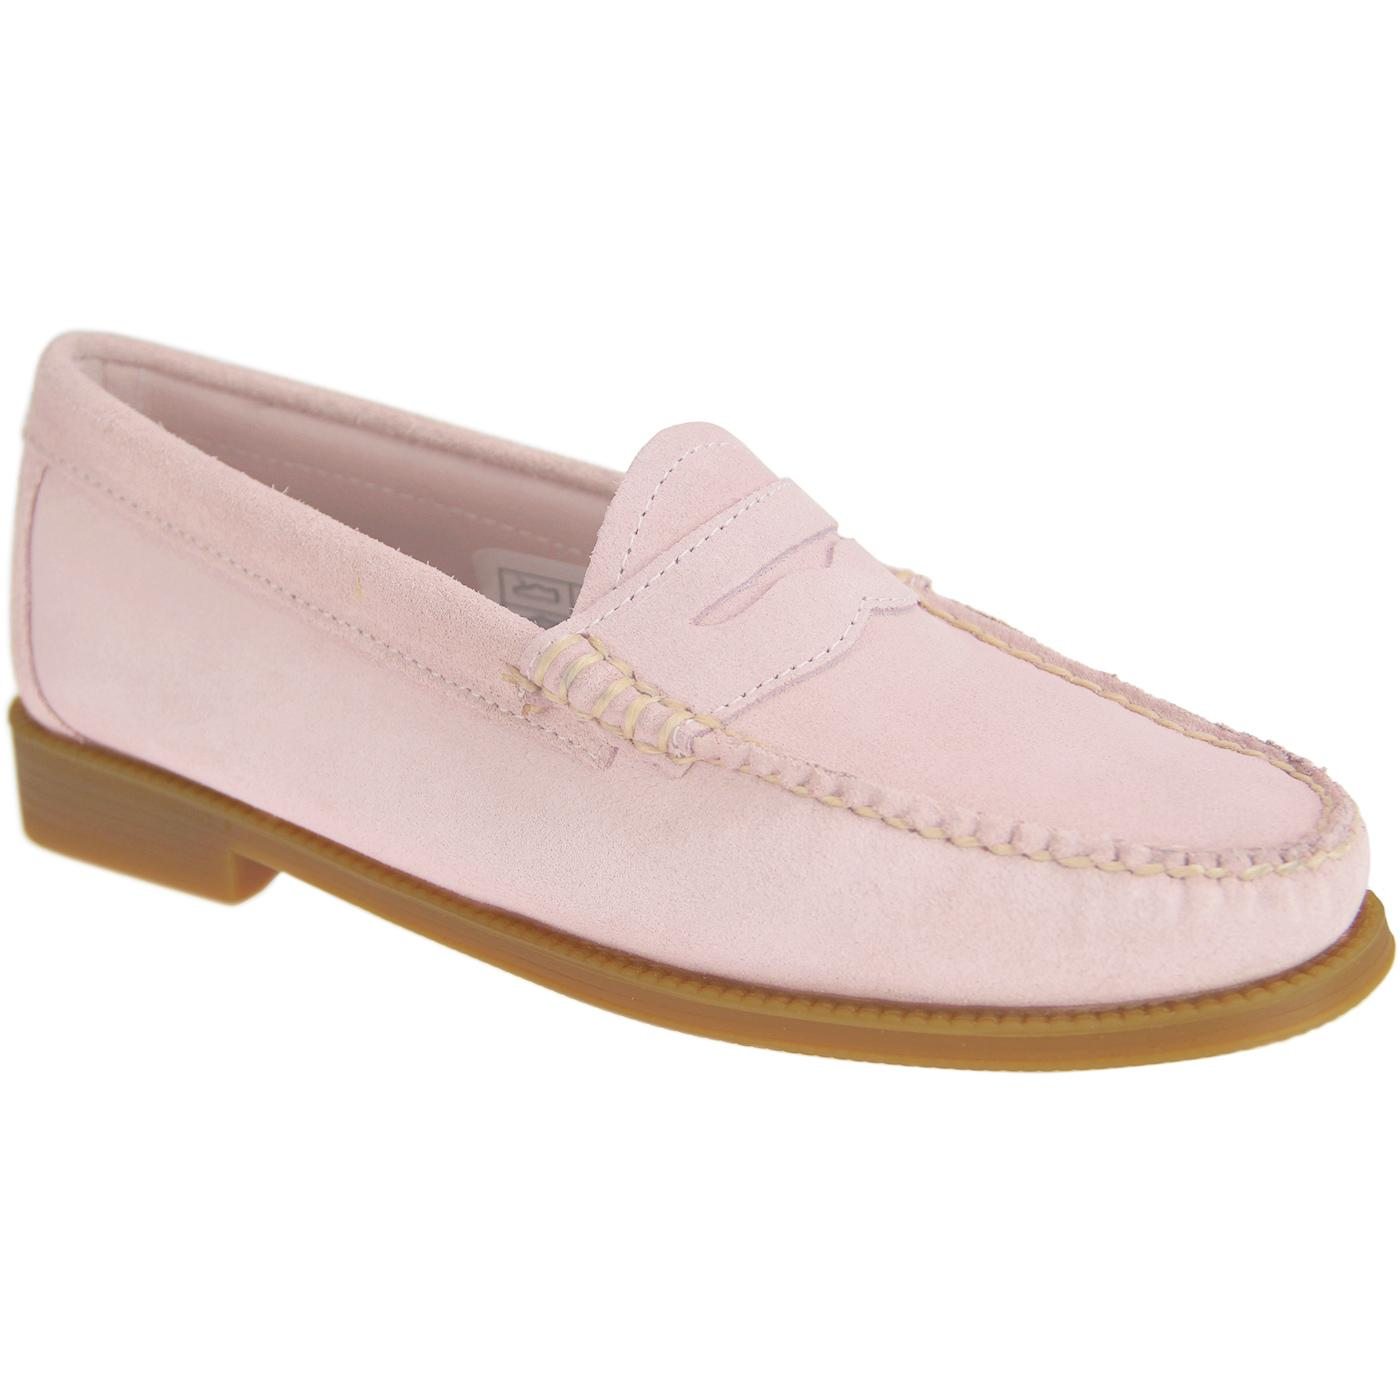 BASS WEEJUNS Women's Retro Suede Penny Loafers in Pink